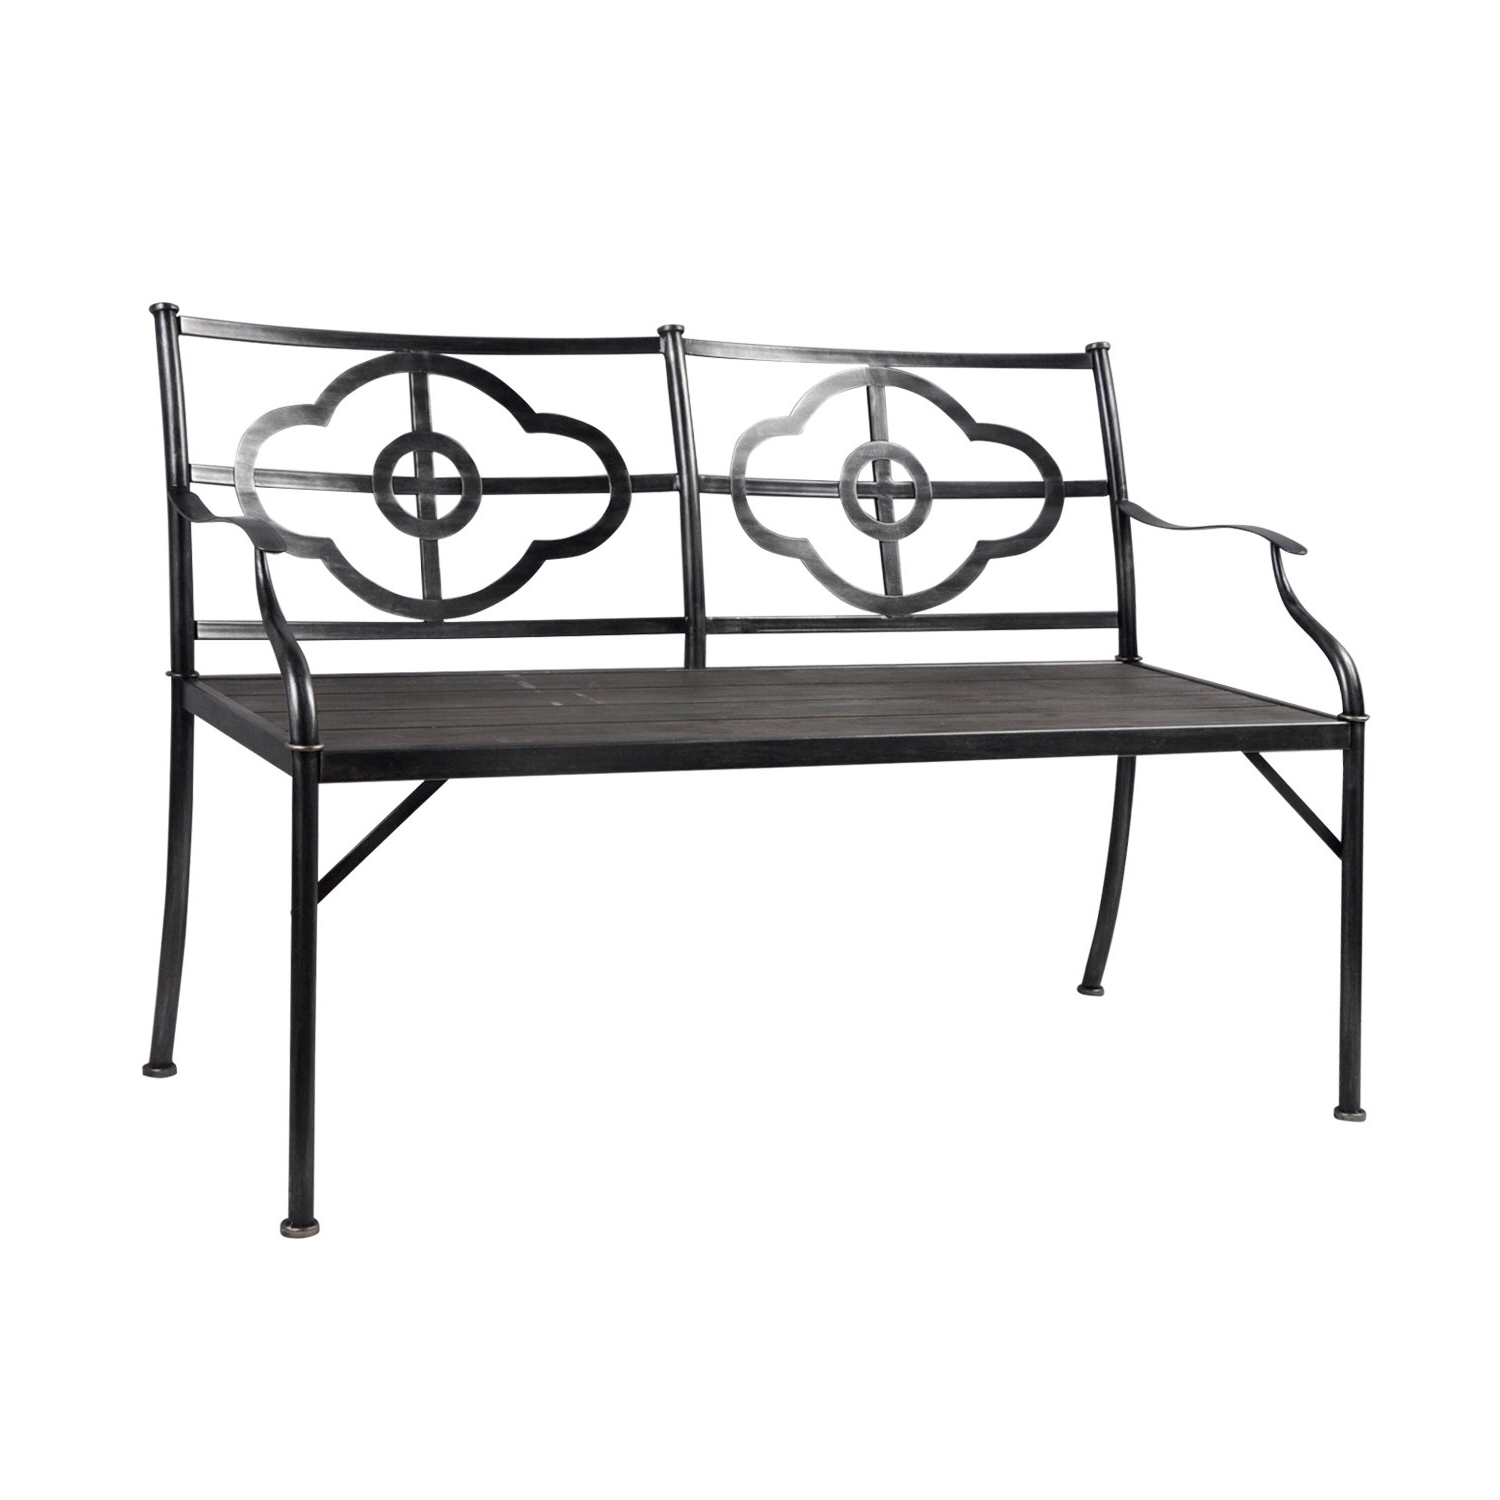 Preferred Ossu Iron Picnic Benches With Regard To Phaedra Clover Wood/metal Garden Bench (View 17 of 30)